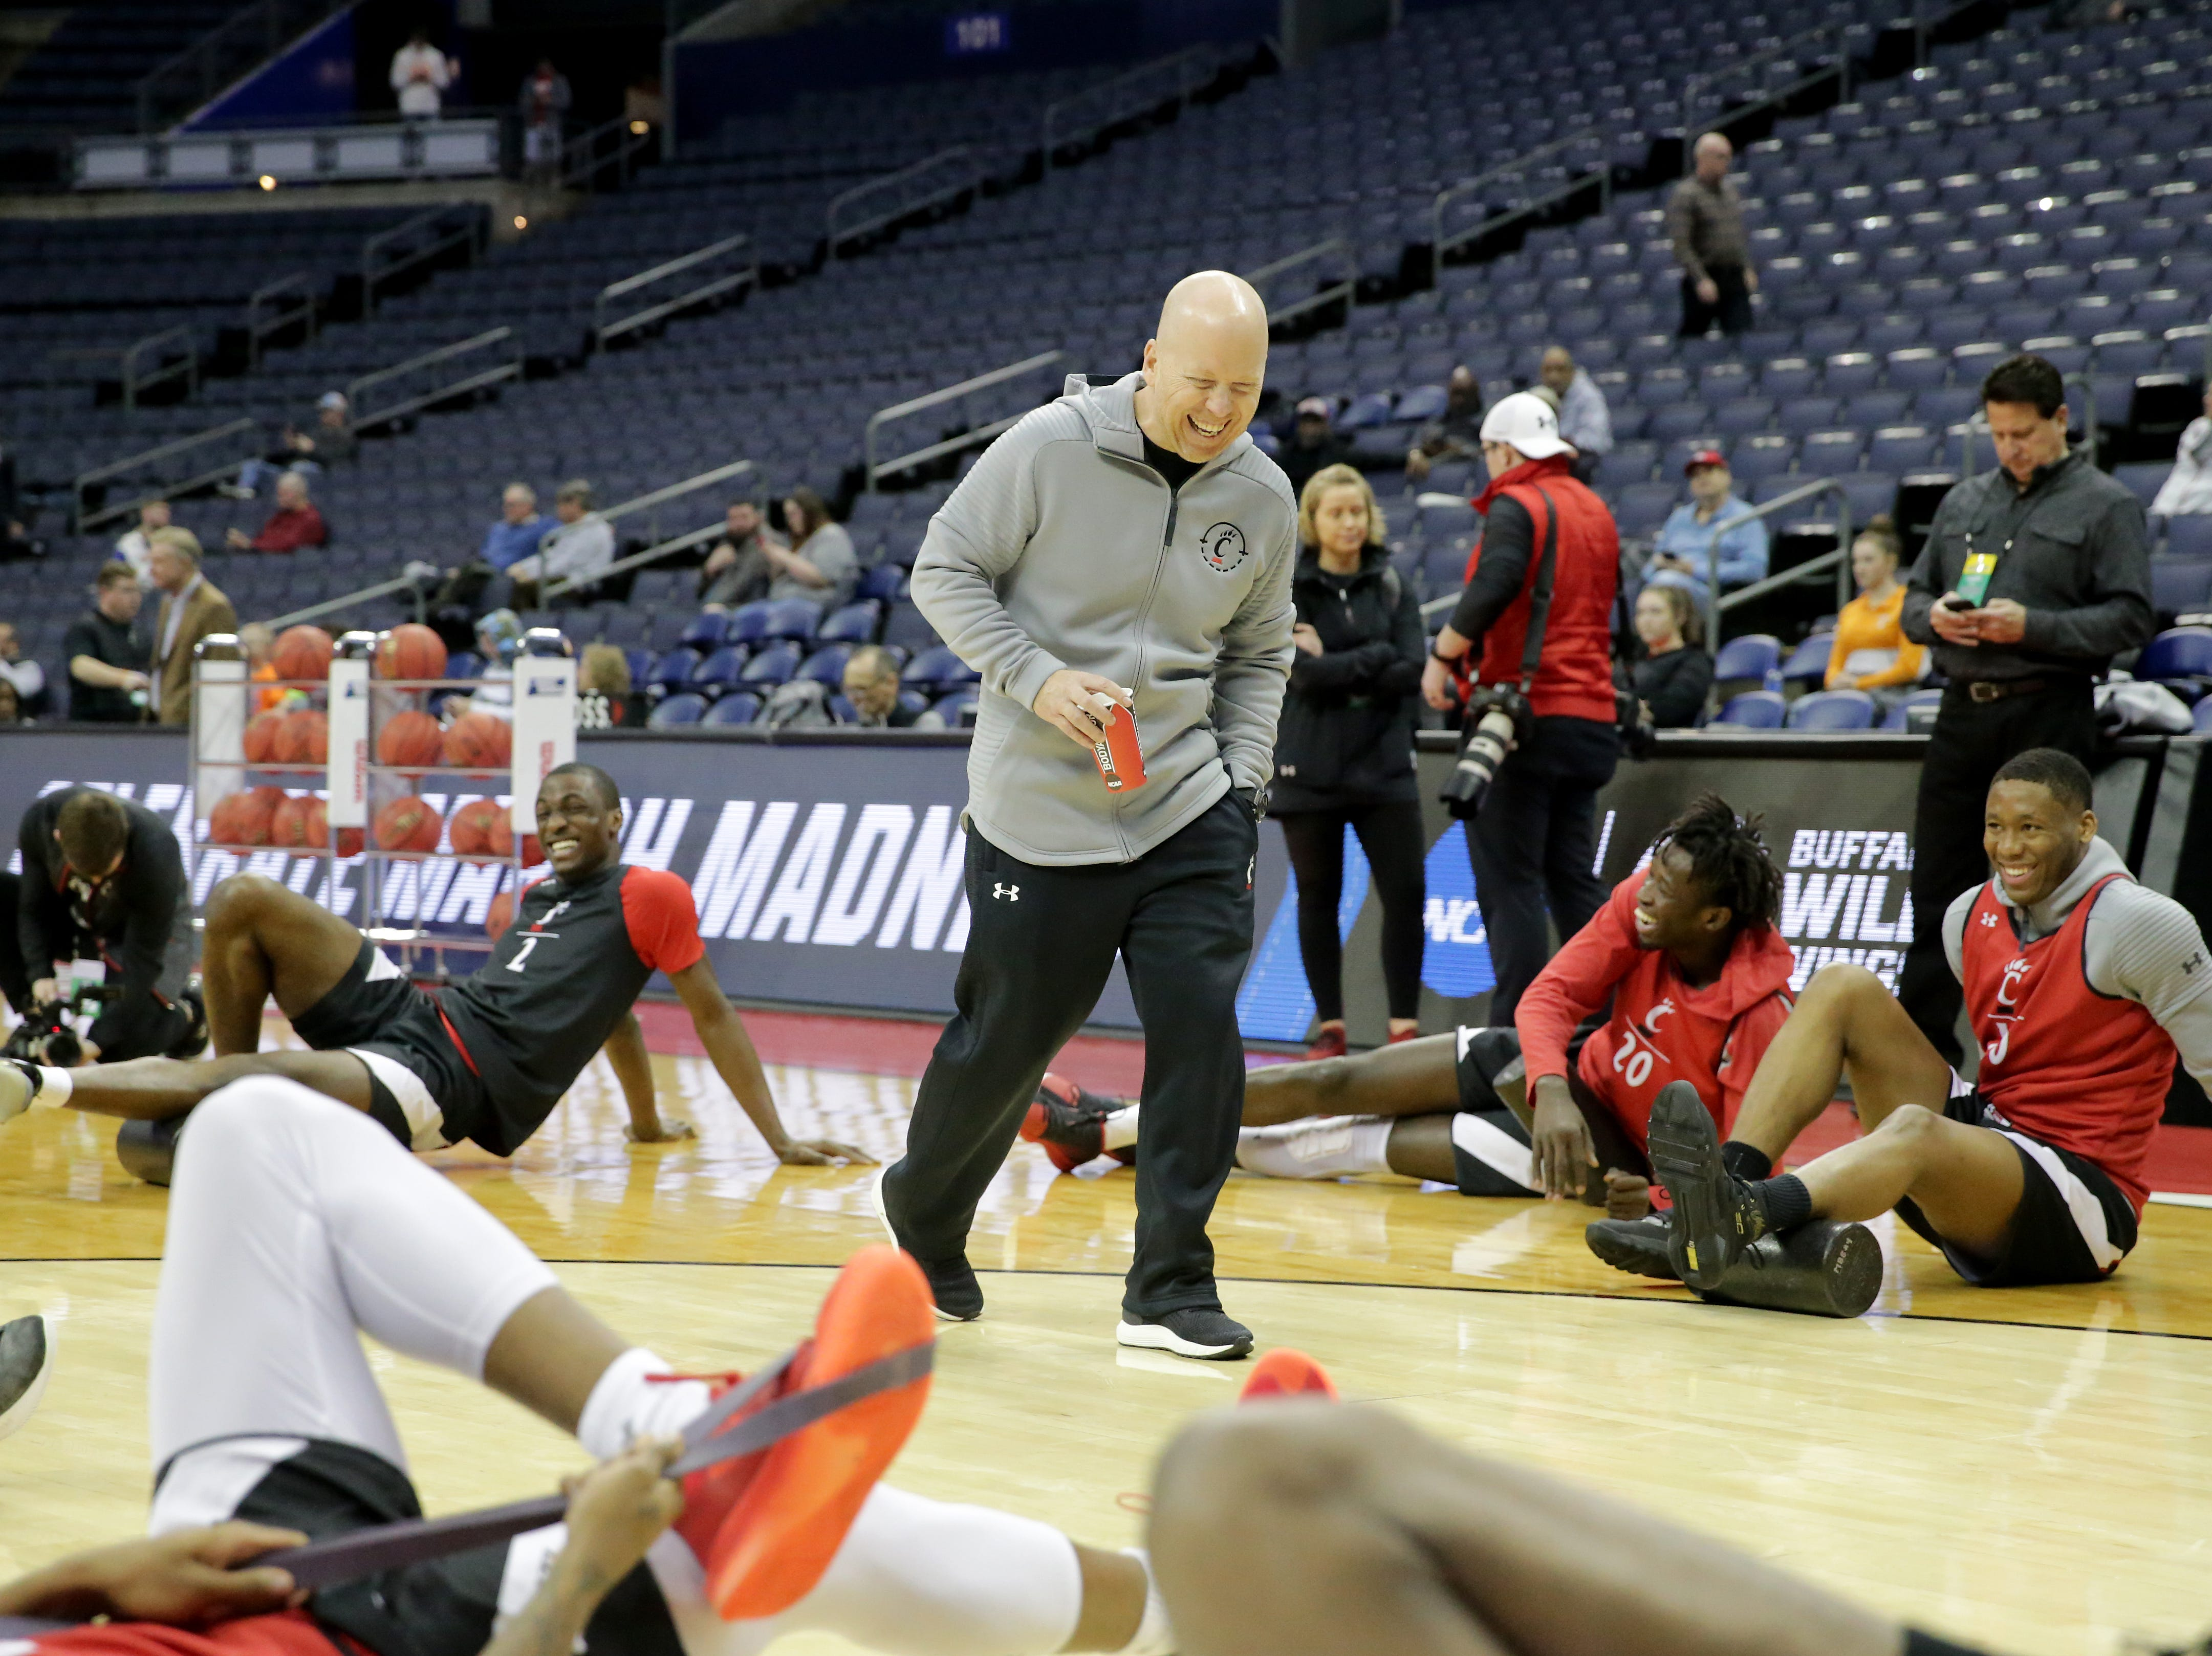 Cincinnati Bearcats head coach Mick Cronin shares a laugh with the team during stretch before open practice, Thursday, March 21, 2019, at Nationwide Arena in Columbus, Ohio.